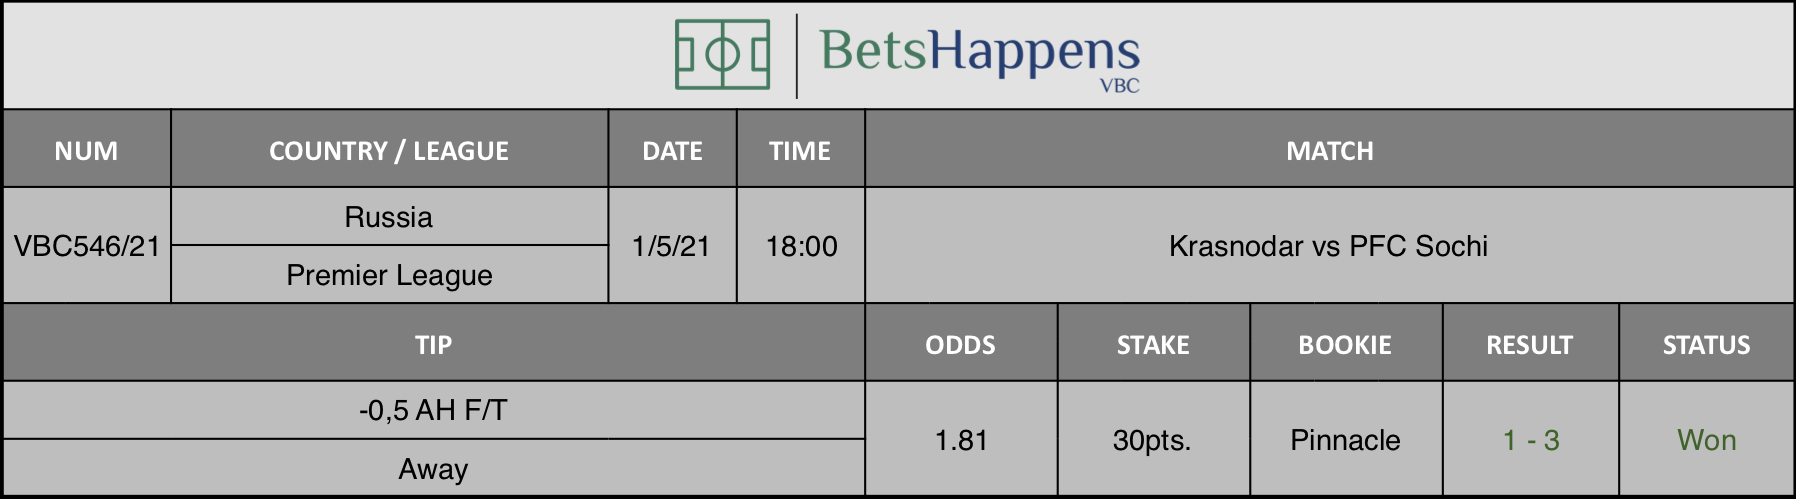 Results of our tip for the Krasnodar vs PFC Sochi  match where -0,5 AH F/T Away is recommended.